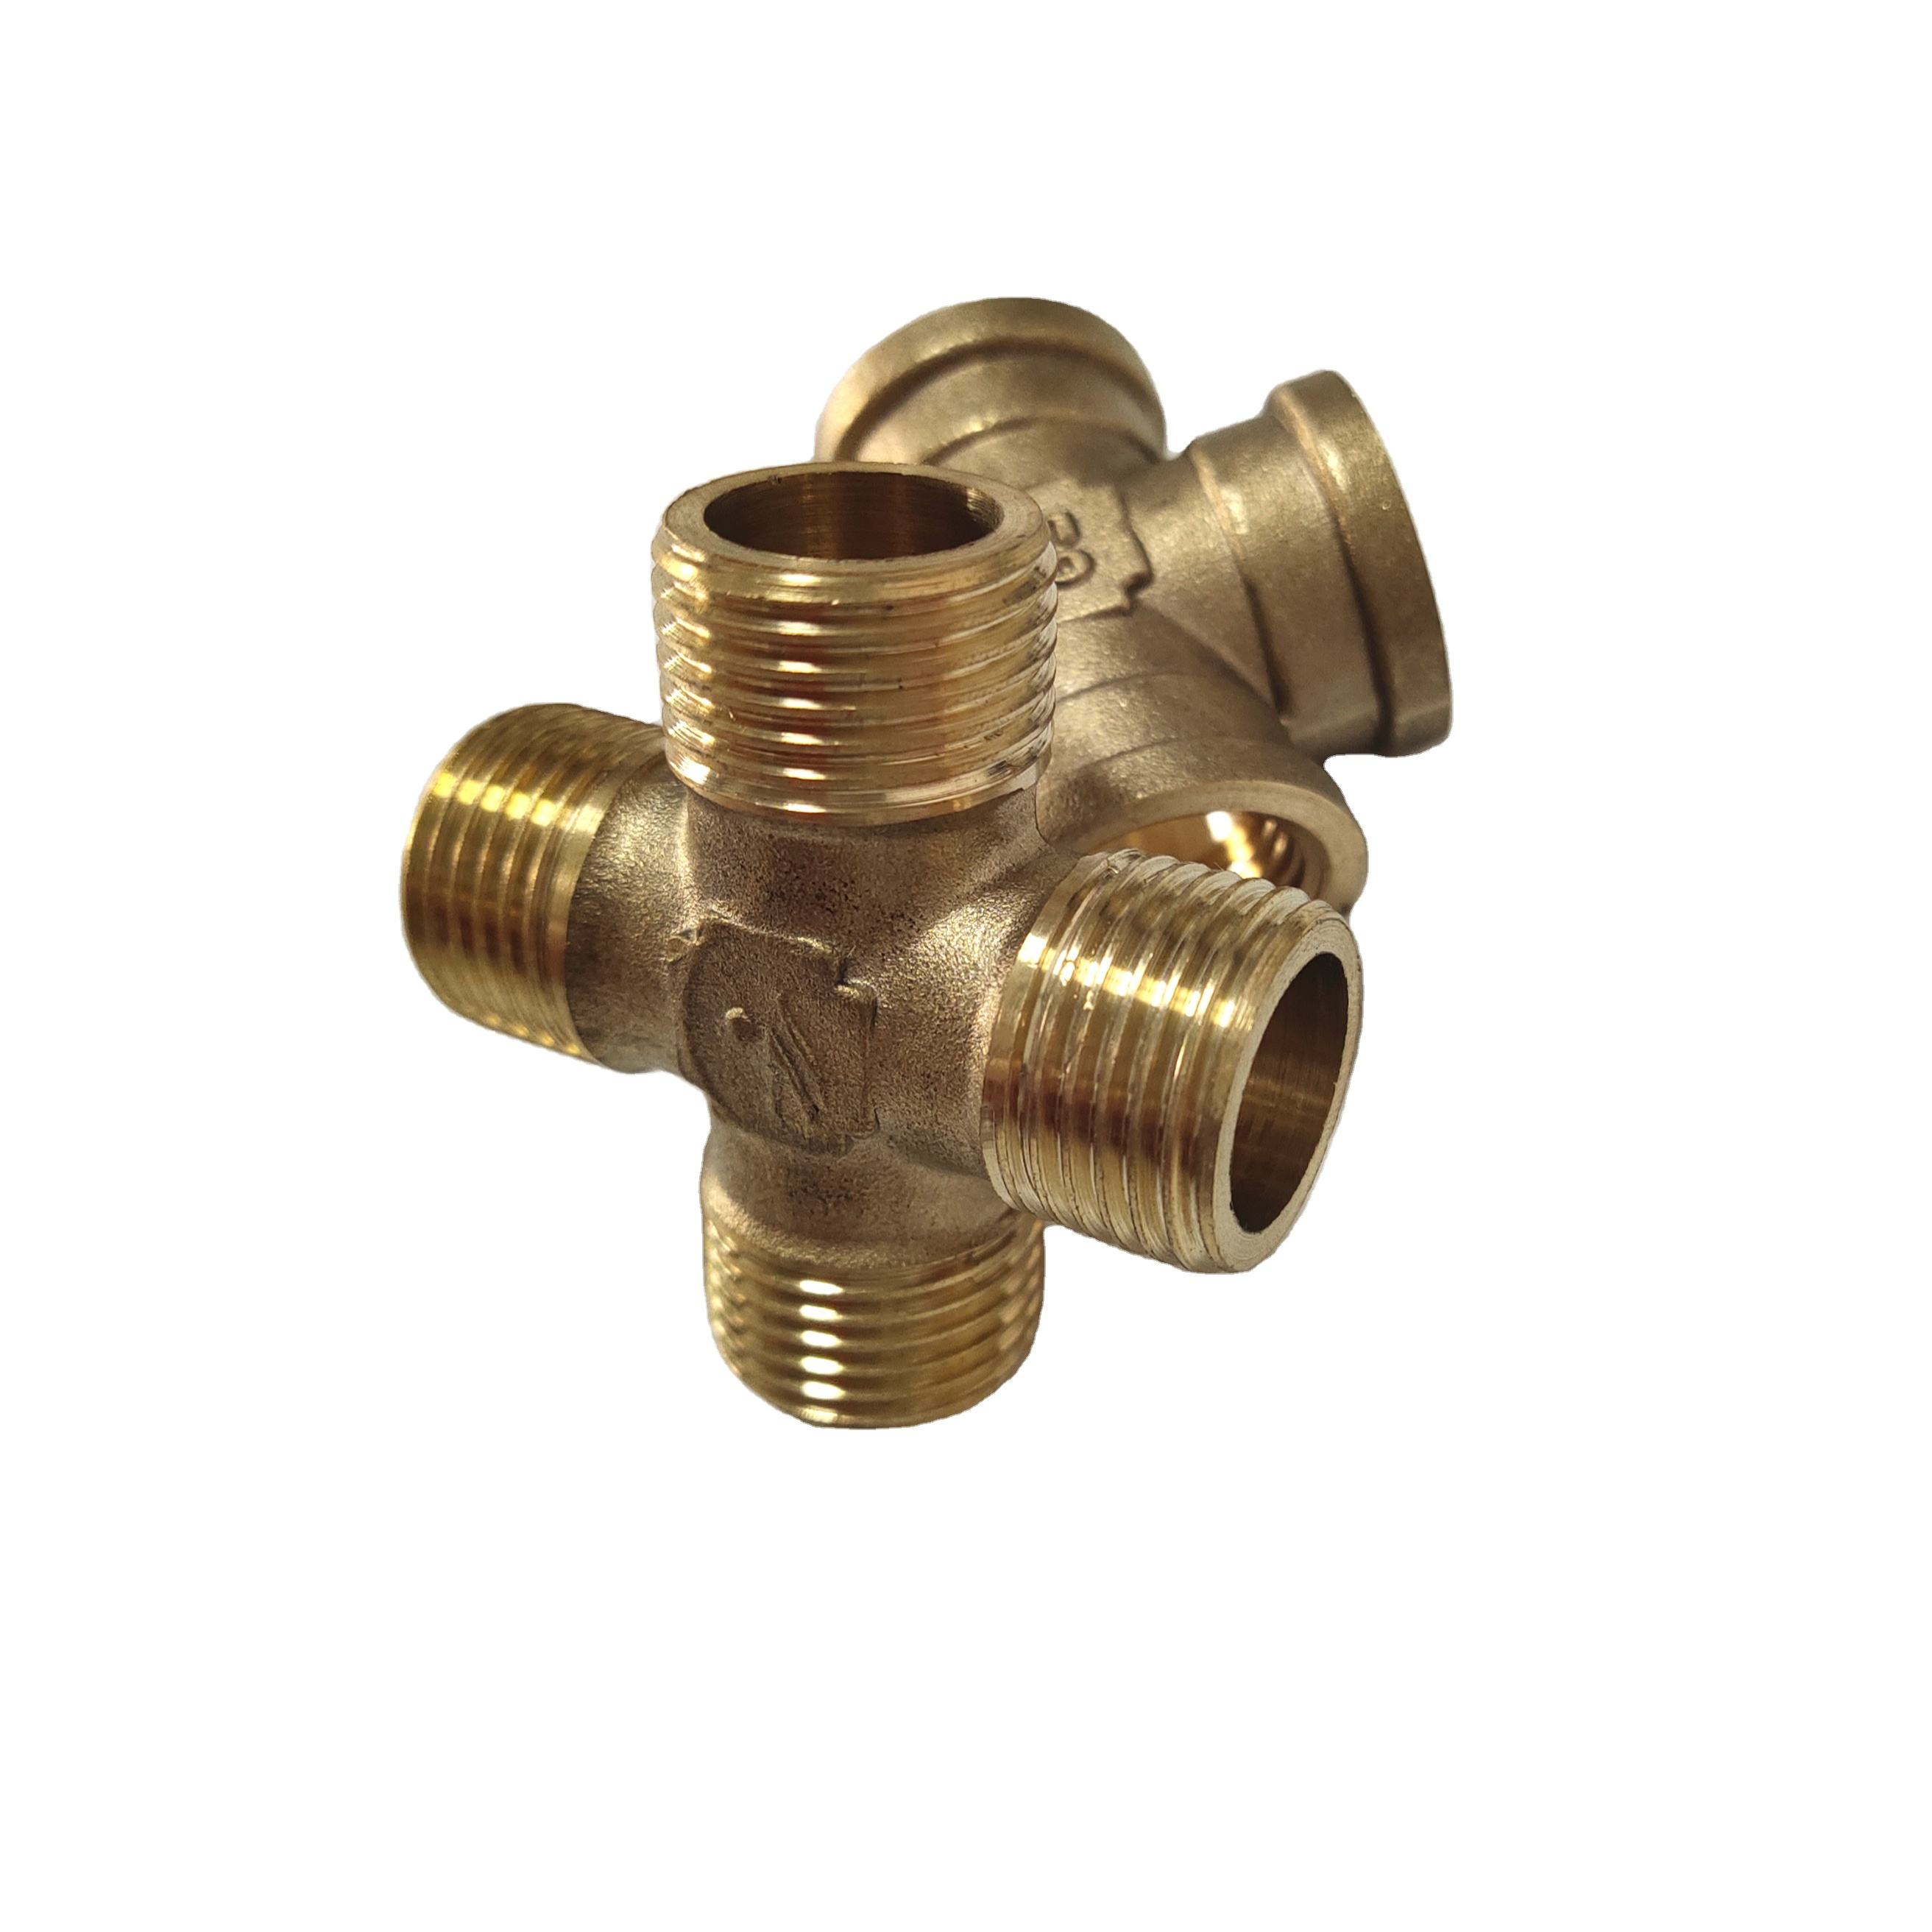 Pipe Fitting Brass Male Thread Cross Copper Four Ways Copper Fit